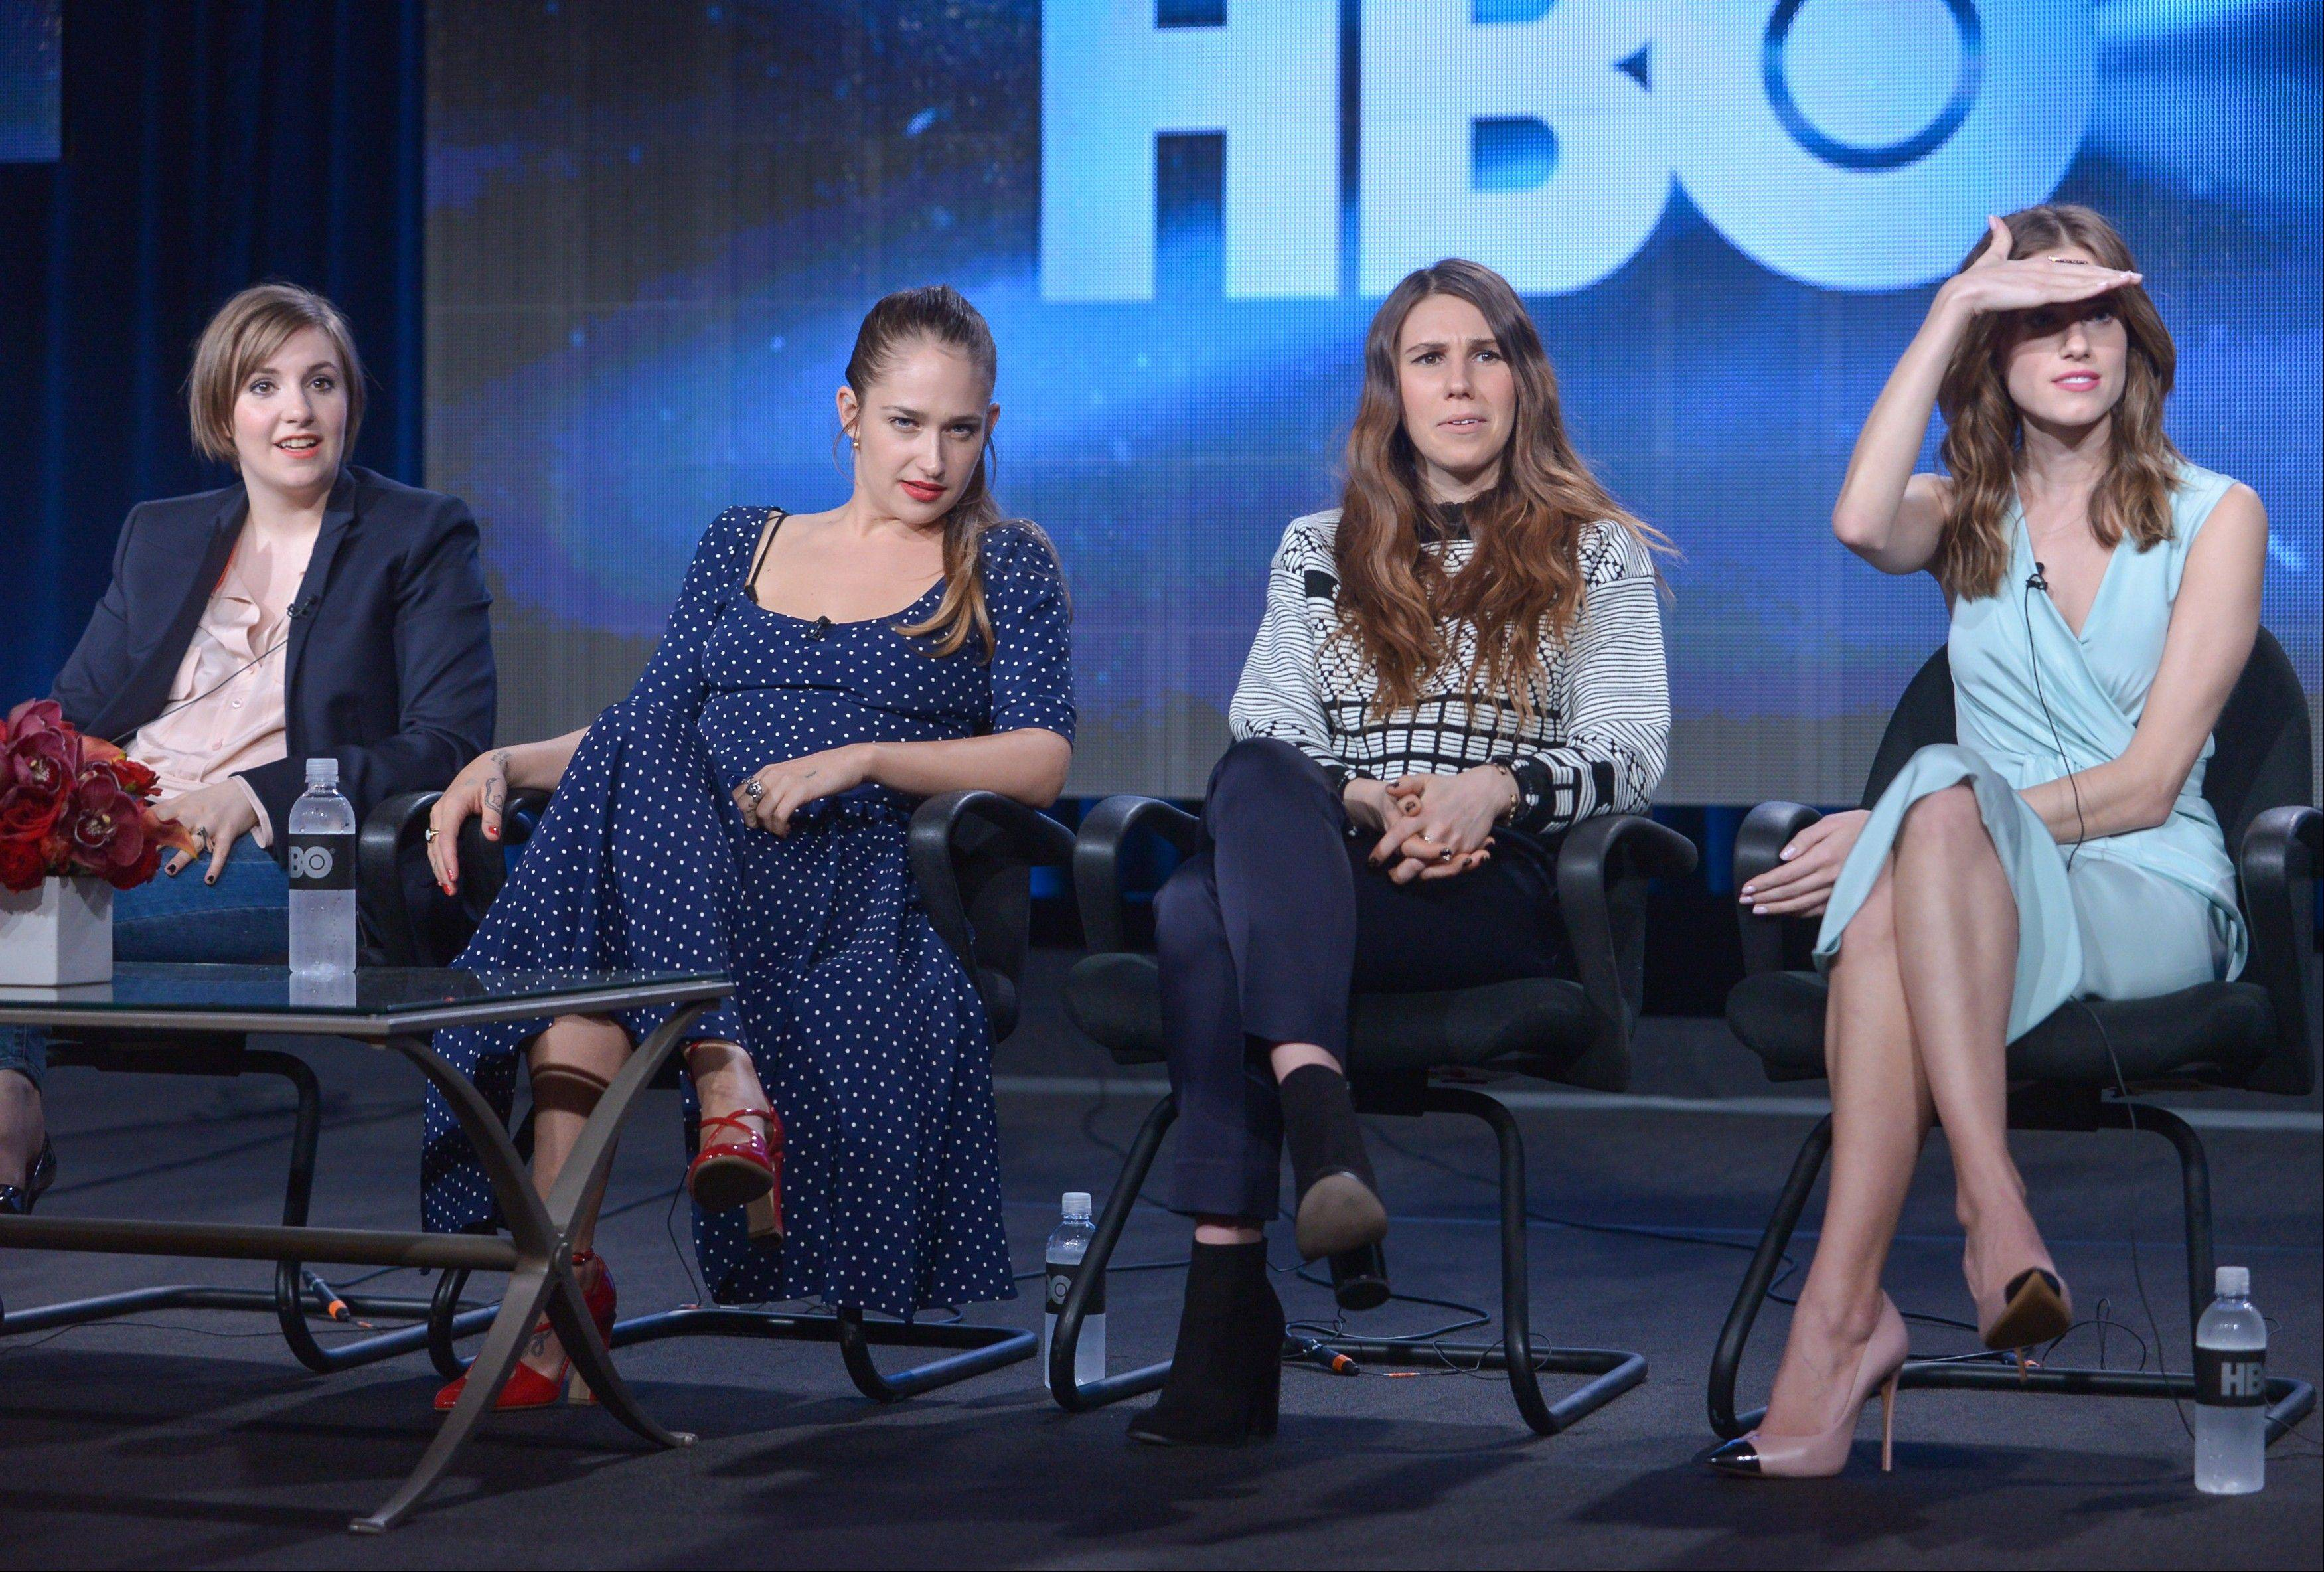 "Lena Dunham, left, Jemima Kirke, Zosia Mamet and Allison Williams on stage during the ""Girls"" panel discussion at the HBO portion of the 2014 Winter Television Critics Association tour at the Langham Hotel on Thursday."